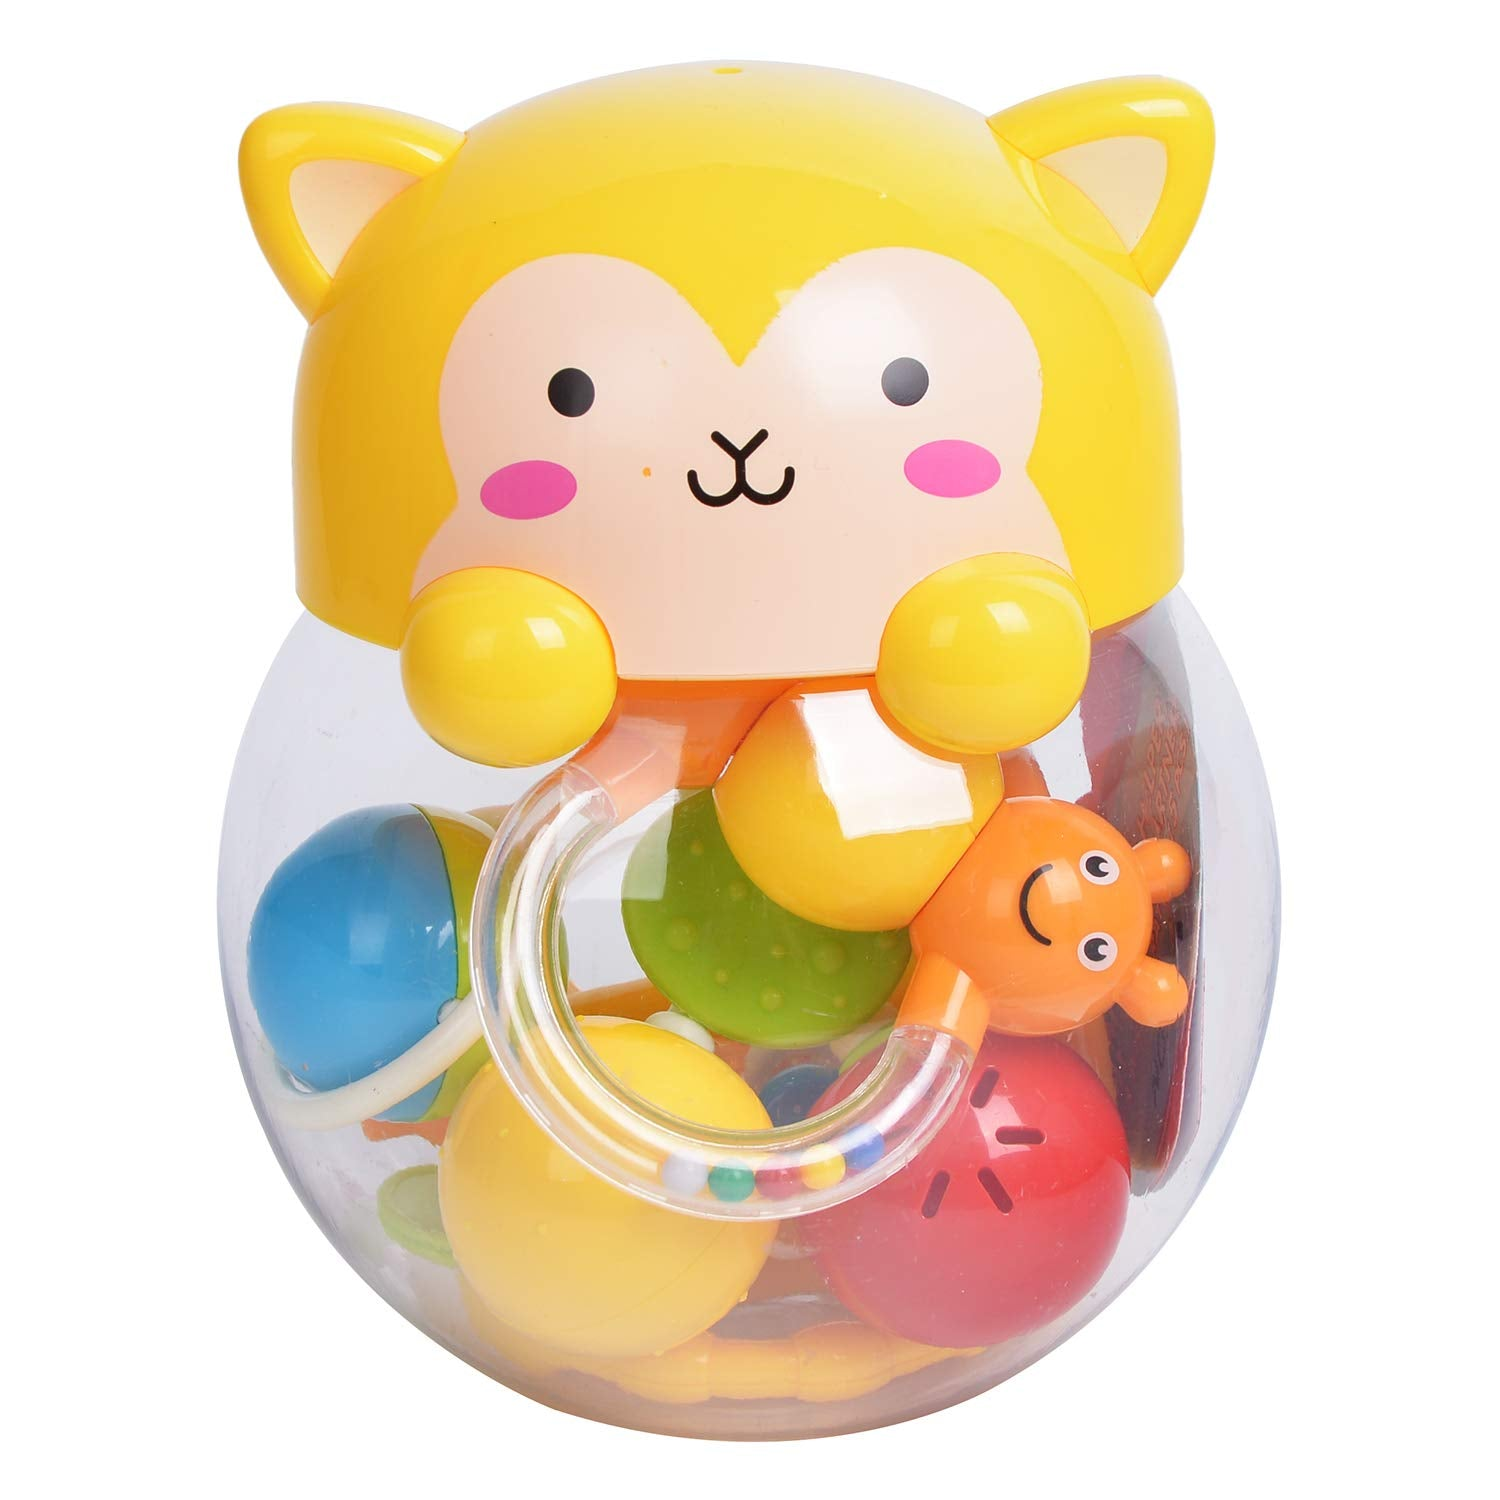 Orapple Kitty Rattle Set Musical Sound for Babies of 0 months plus